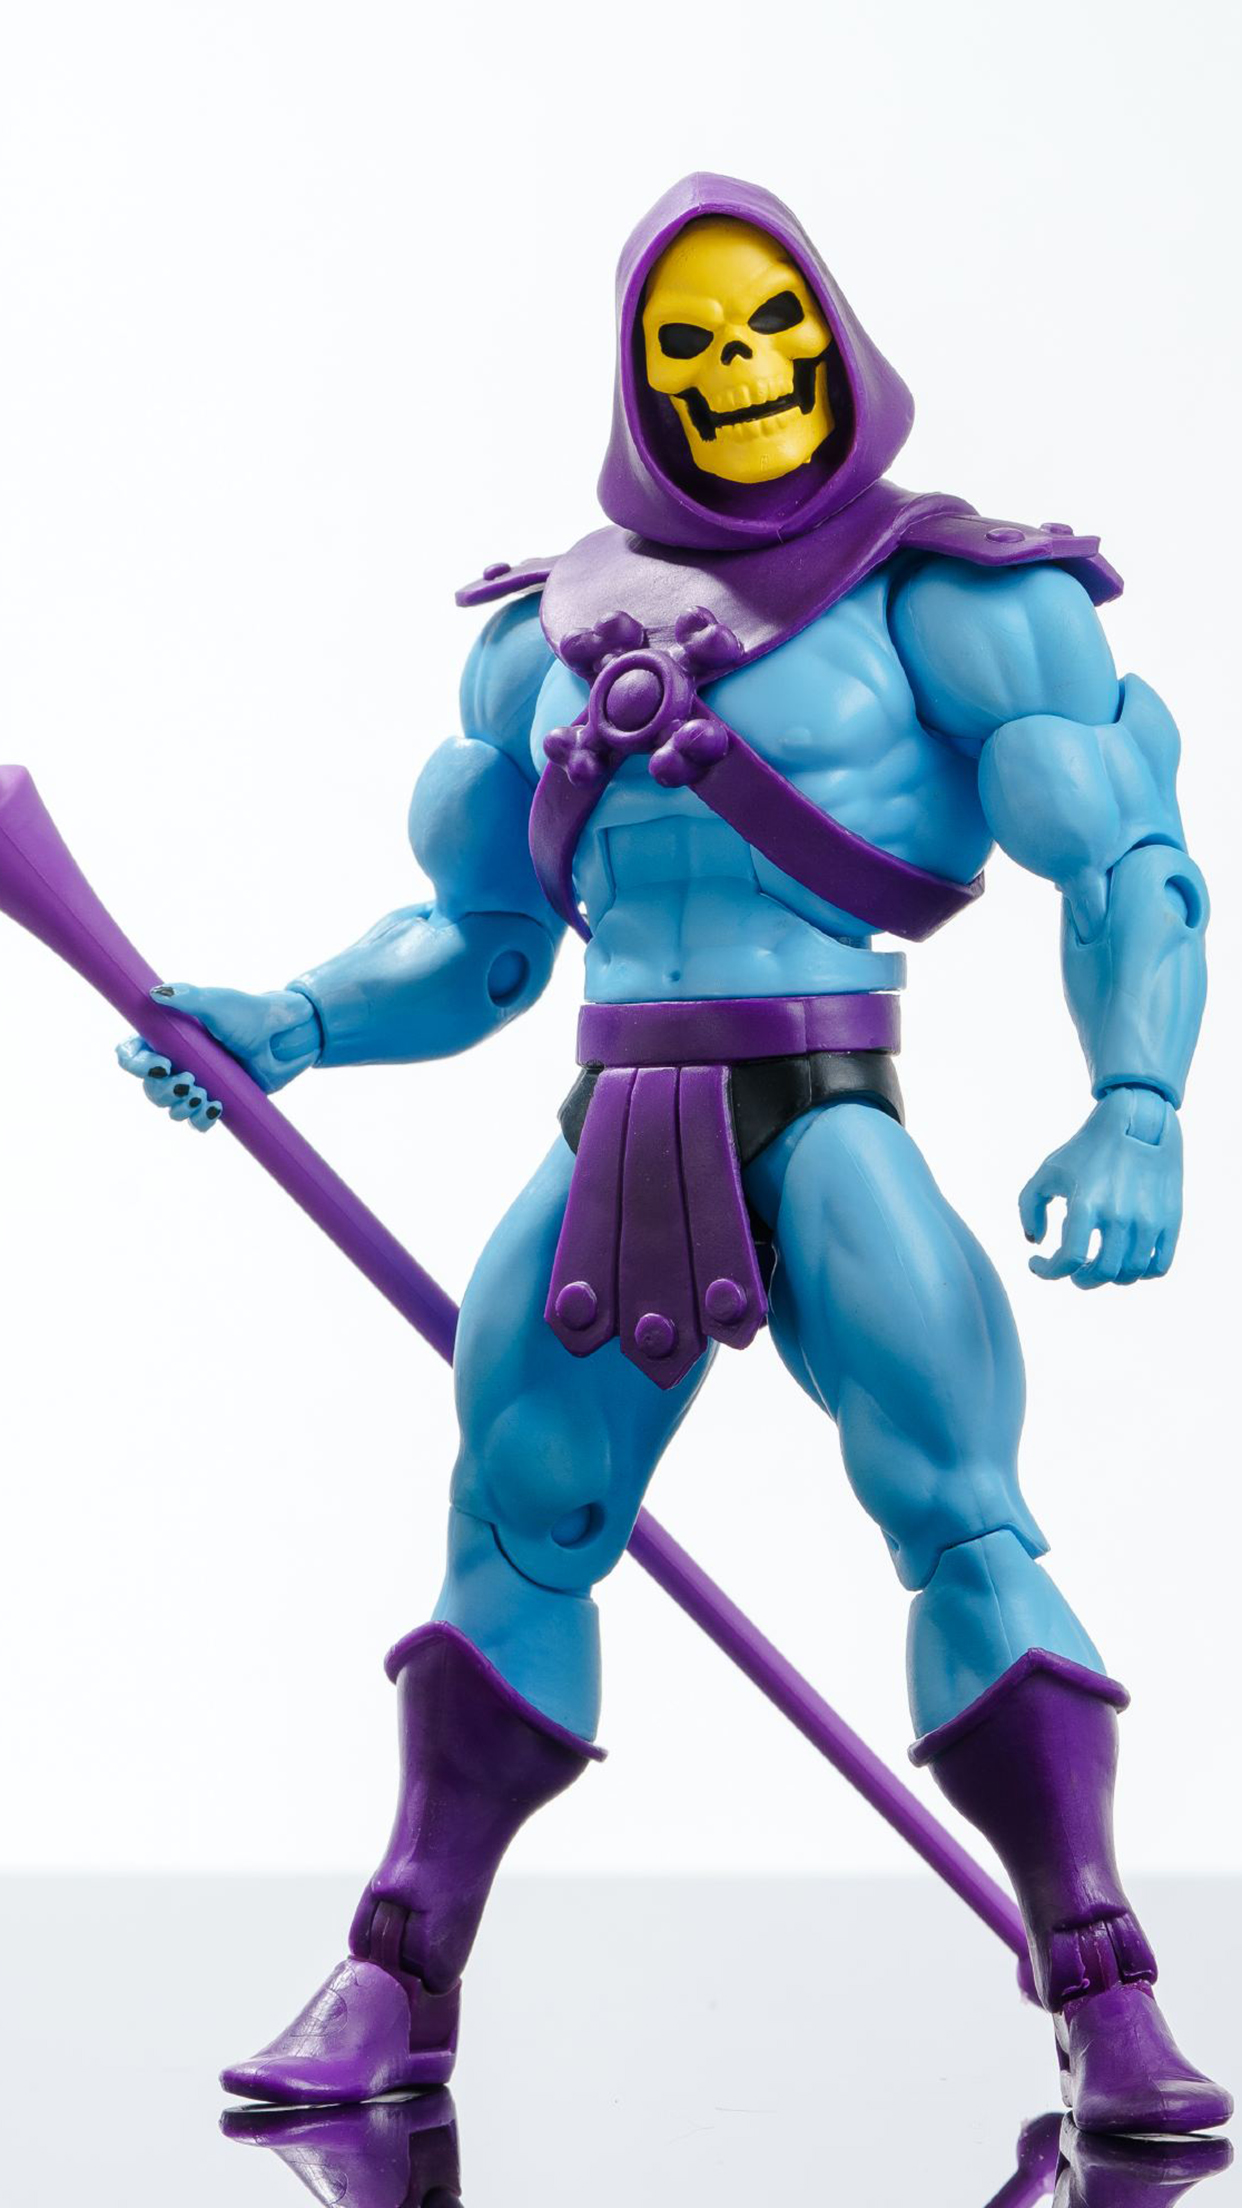 Skeletor Standing With Cane 3Wallpapers iPhone Parallax Skeletor : Standing With Cane